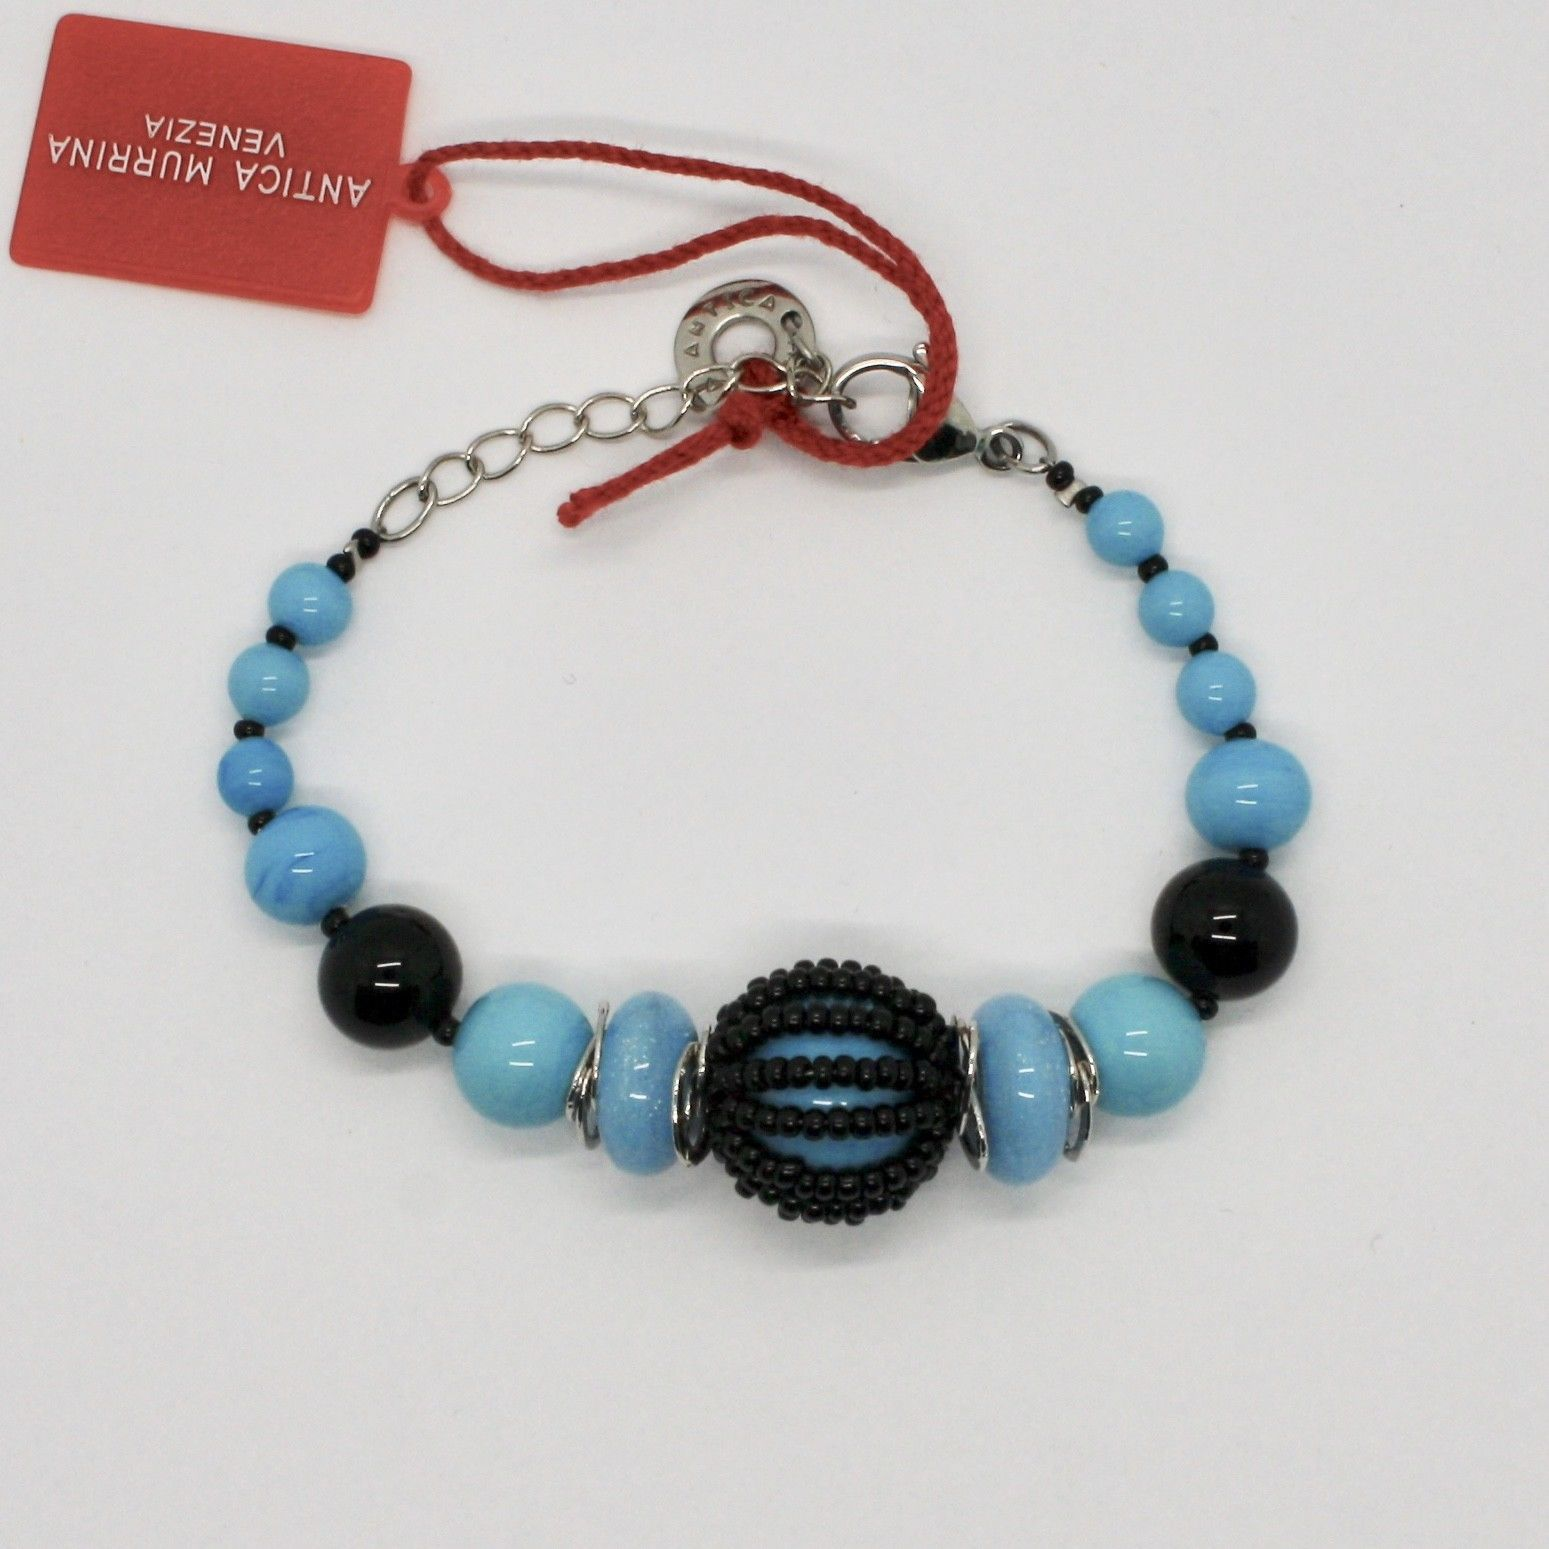 BRACELET ANTICA MURRINA VENEZIA WITH MURANO GLASS BLUE BLACK TURQUOISE BR742A07